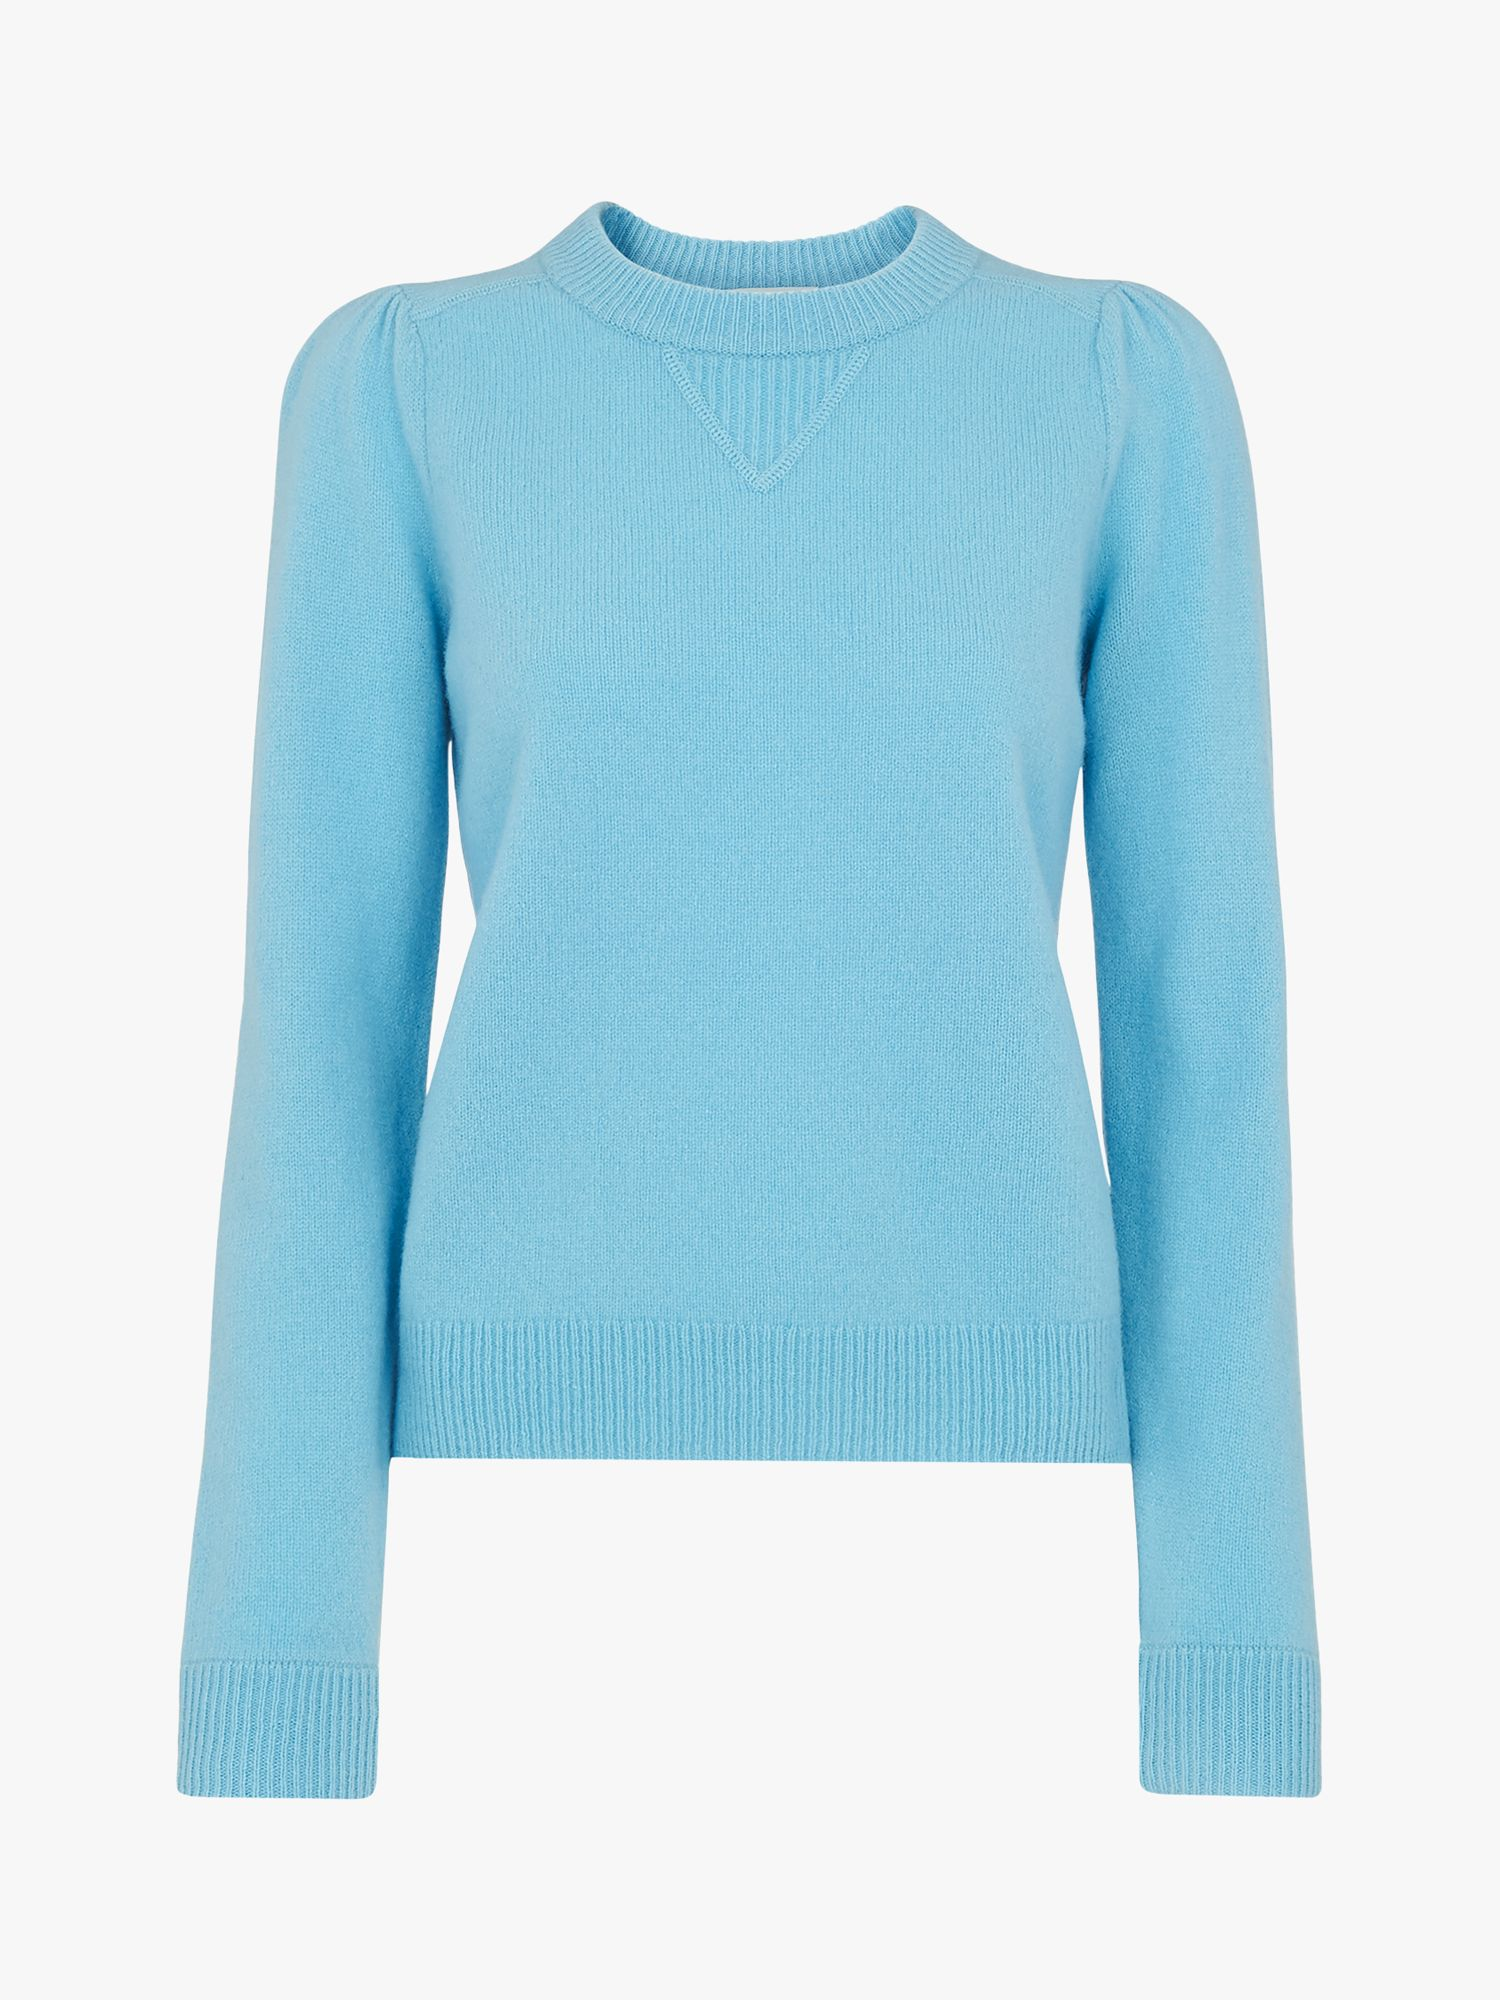 Buy Whistles Puff Sleeve Merino Jumper, Pale Blue, 6 Online at johnlewis.com